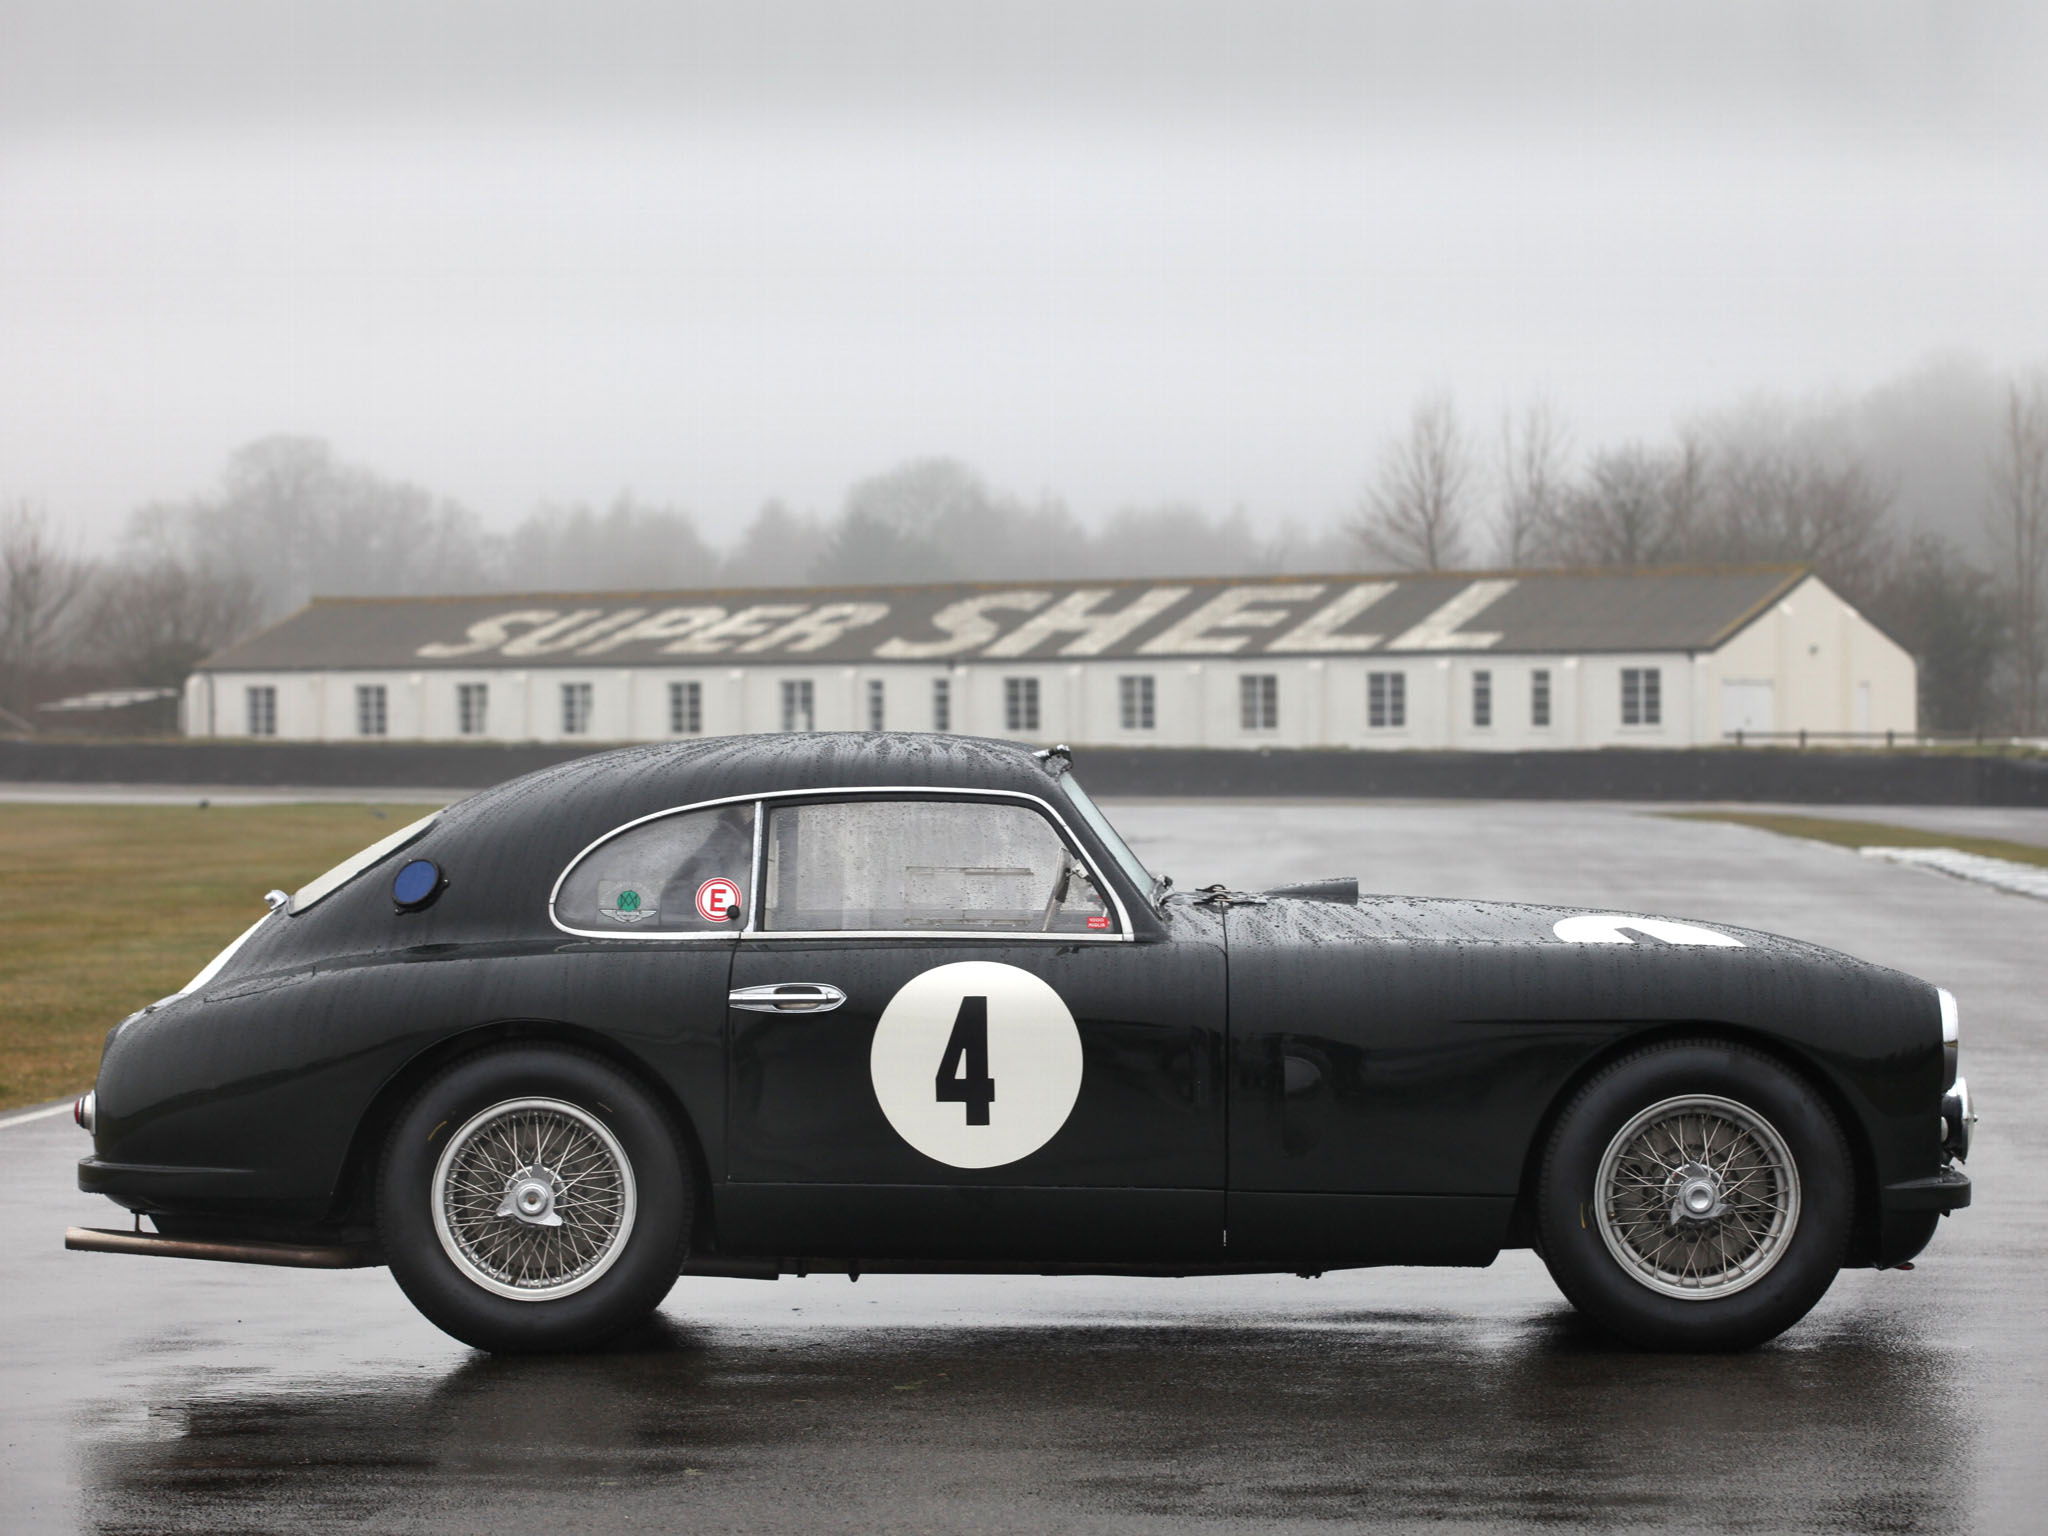 Aston Martin DB2 Team Car photo 79156